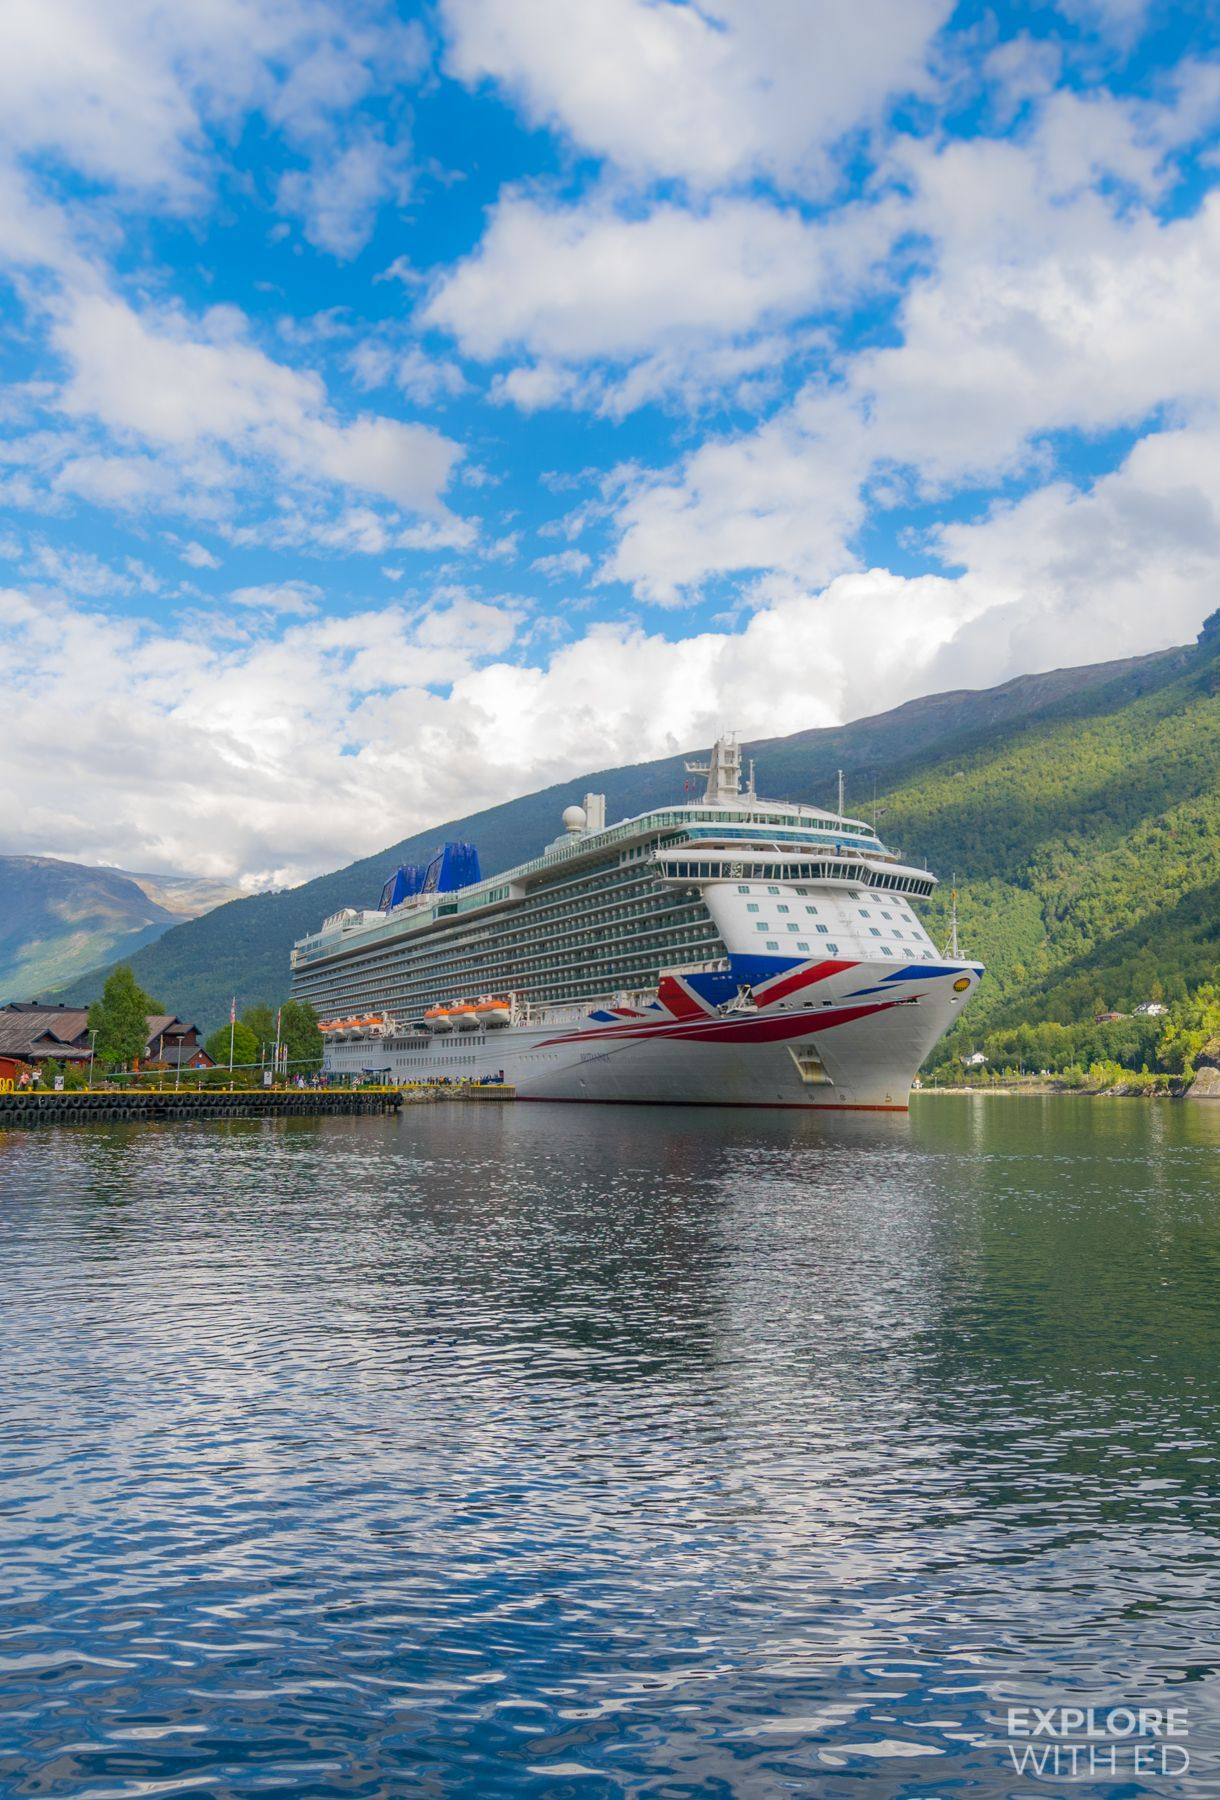 Whats A Cruise To The Norwegian Fjords Like From Southampton In 2020 Norway Cruise Scandinavian Cruises Fjord Cruises